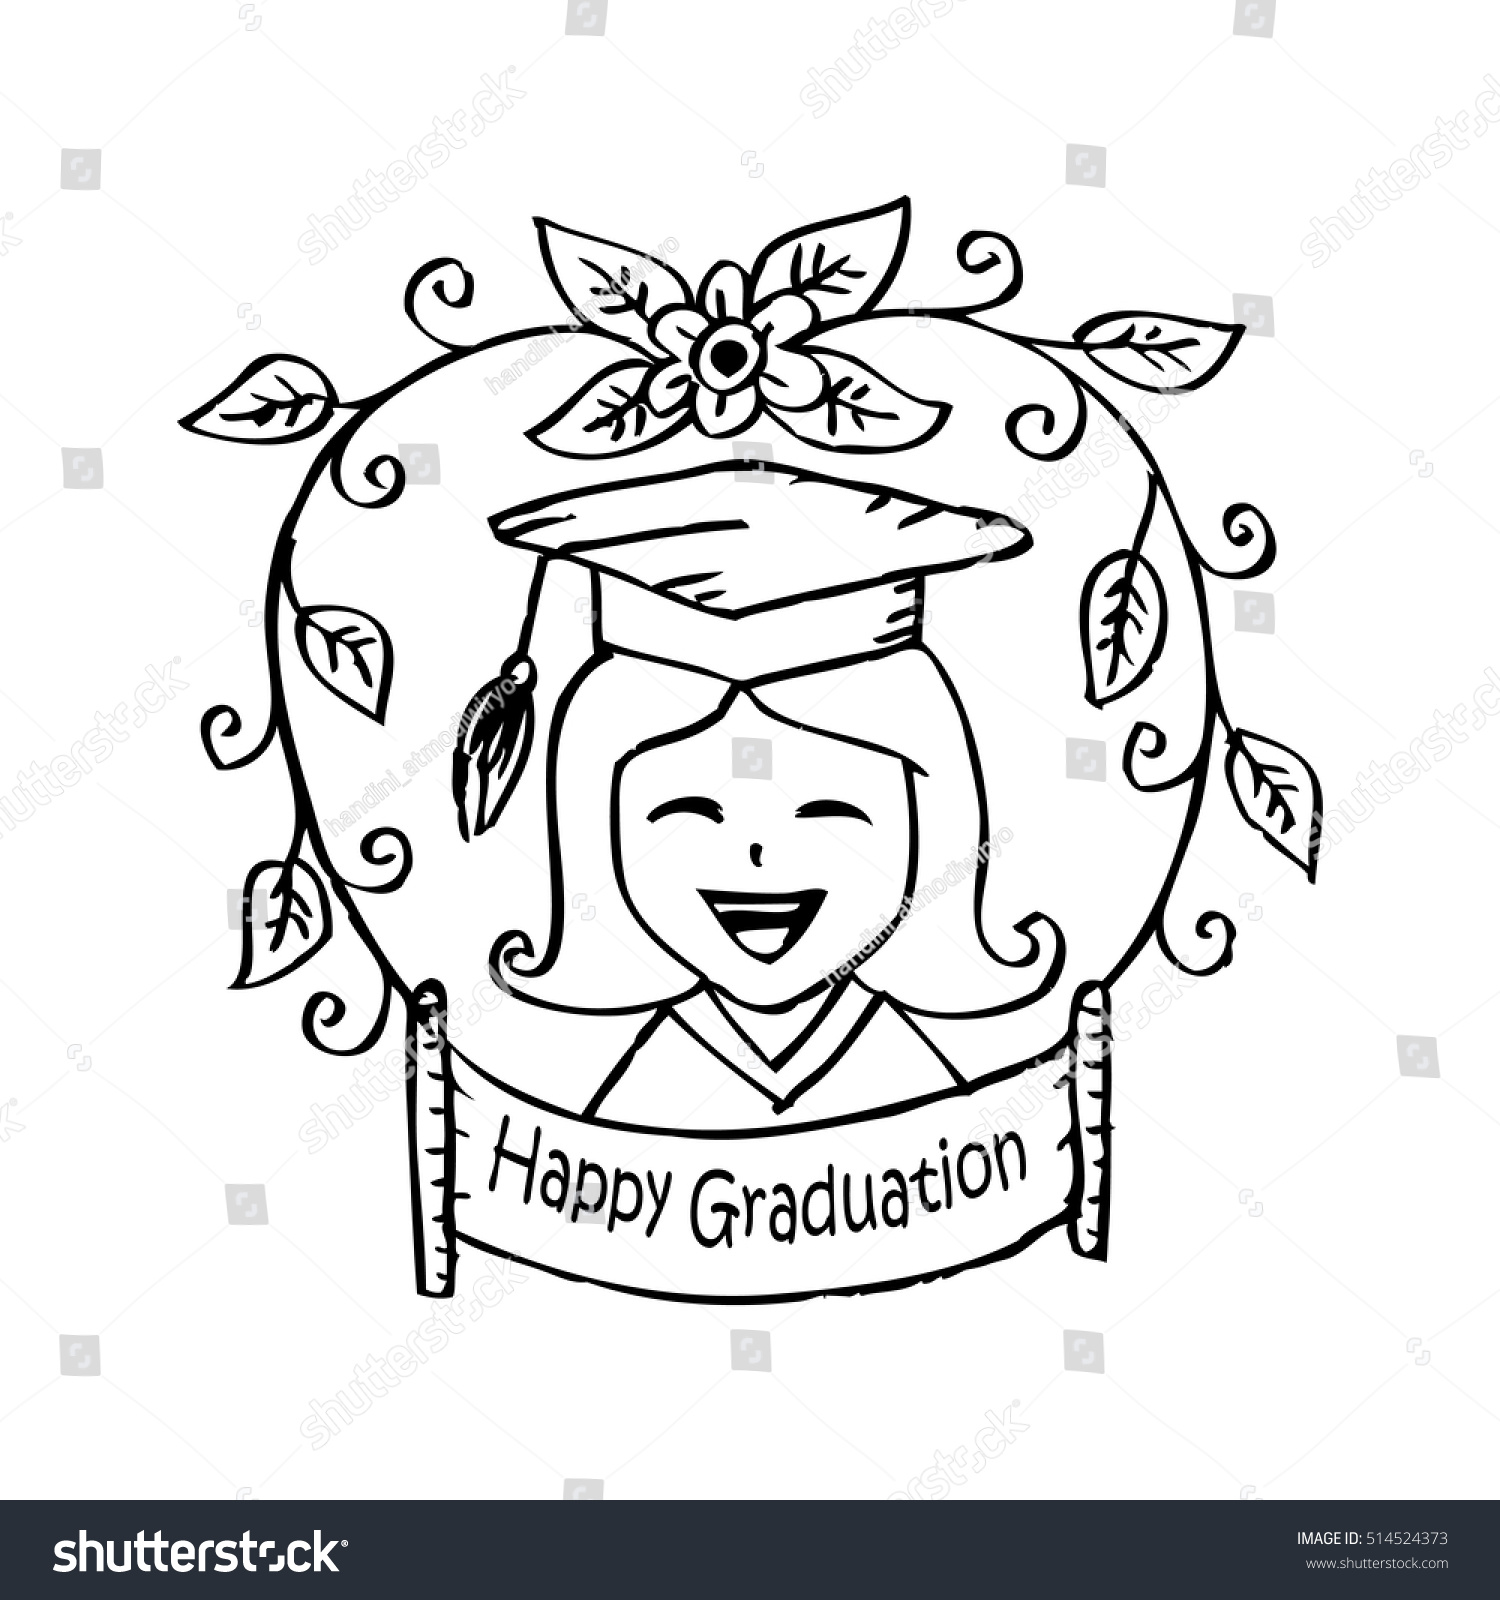 Happy Graduation Greeting Card Cute Girl Stock Vector 514524373 ...